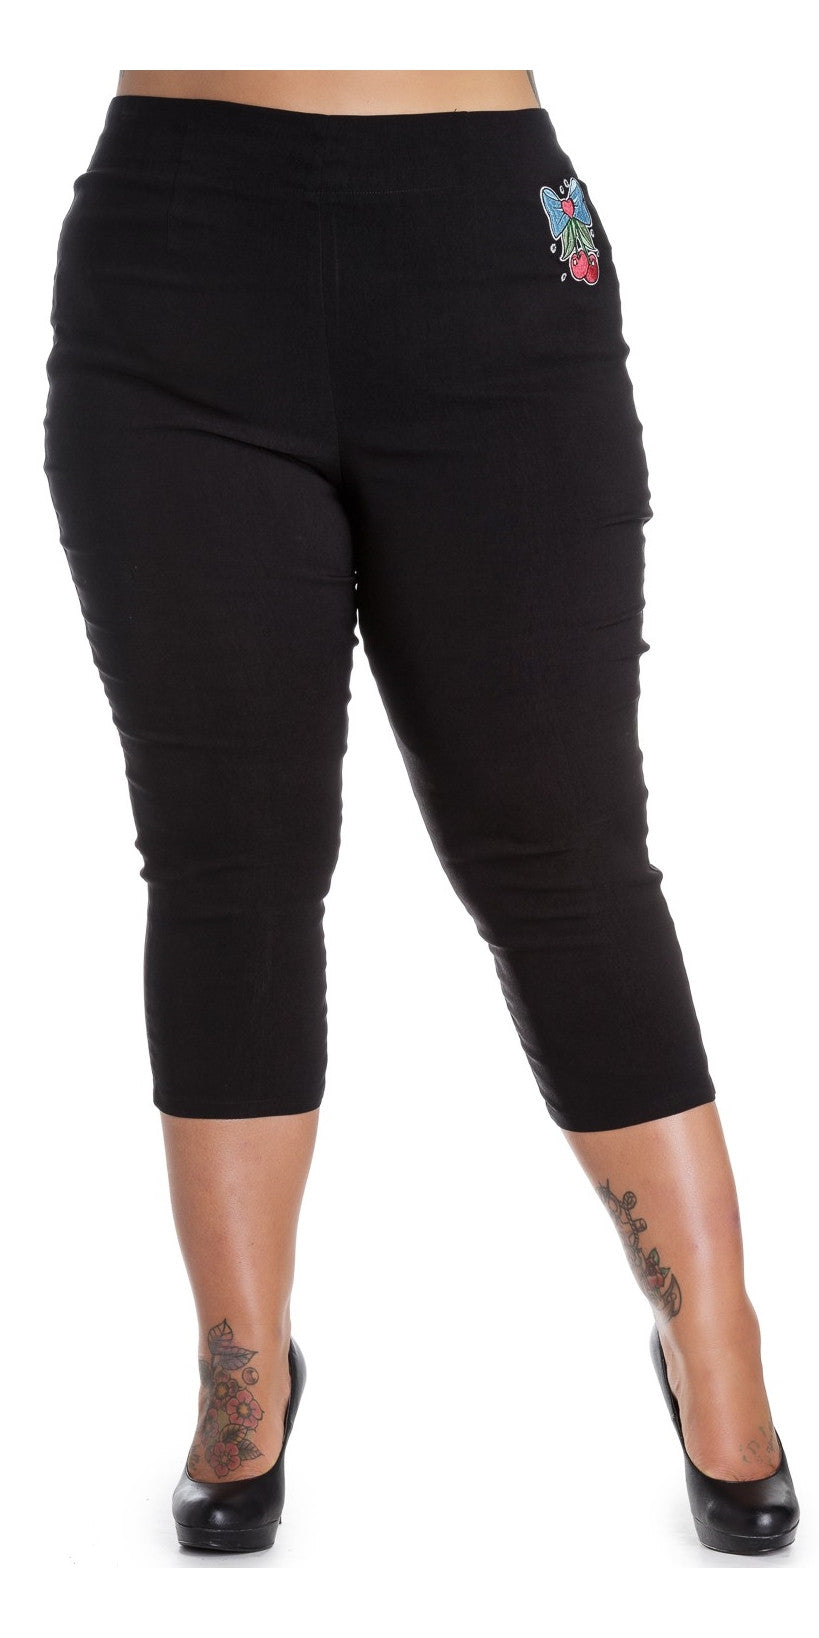 Anna Black Capris Pants 3/4 length Pedal Pushers